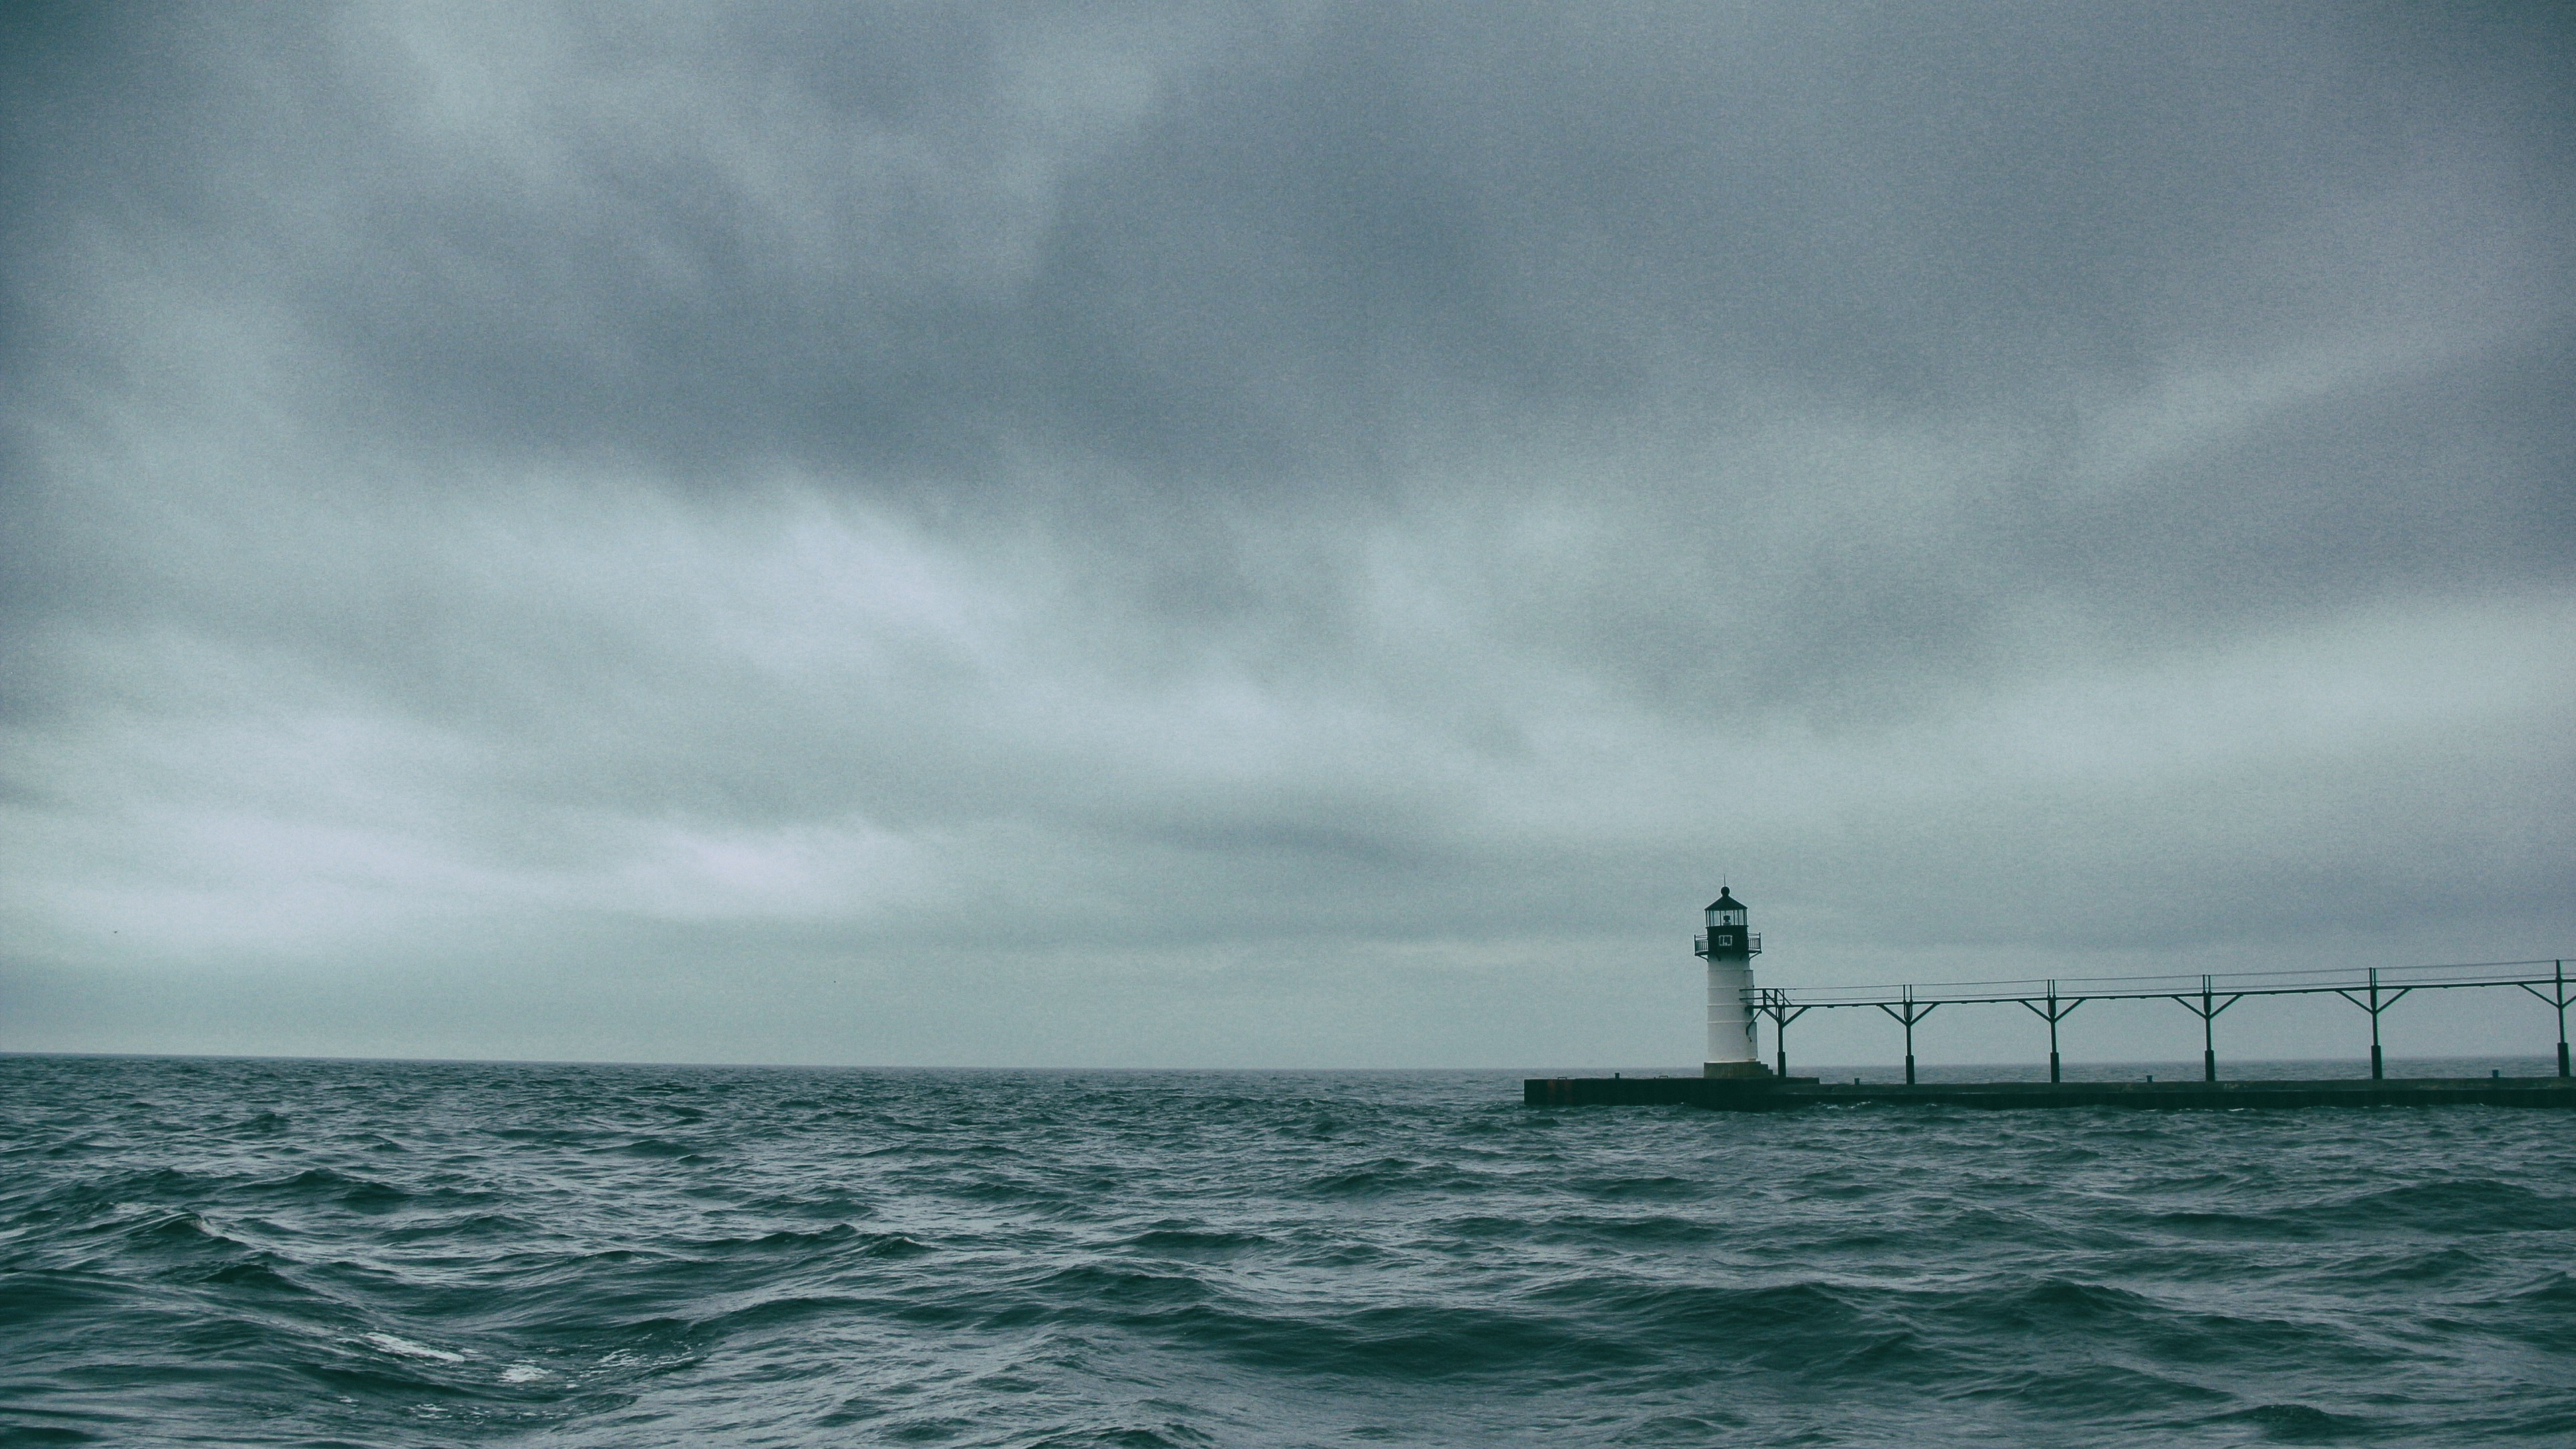 A lighthouse surrounded by water, with gray skies in the background